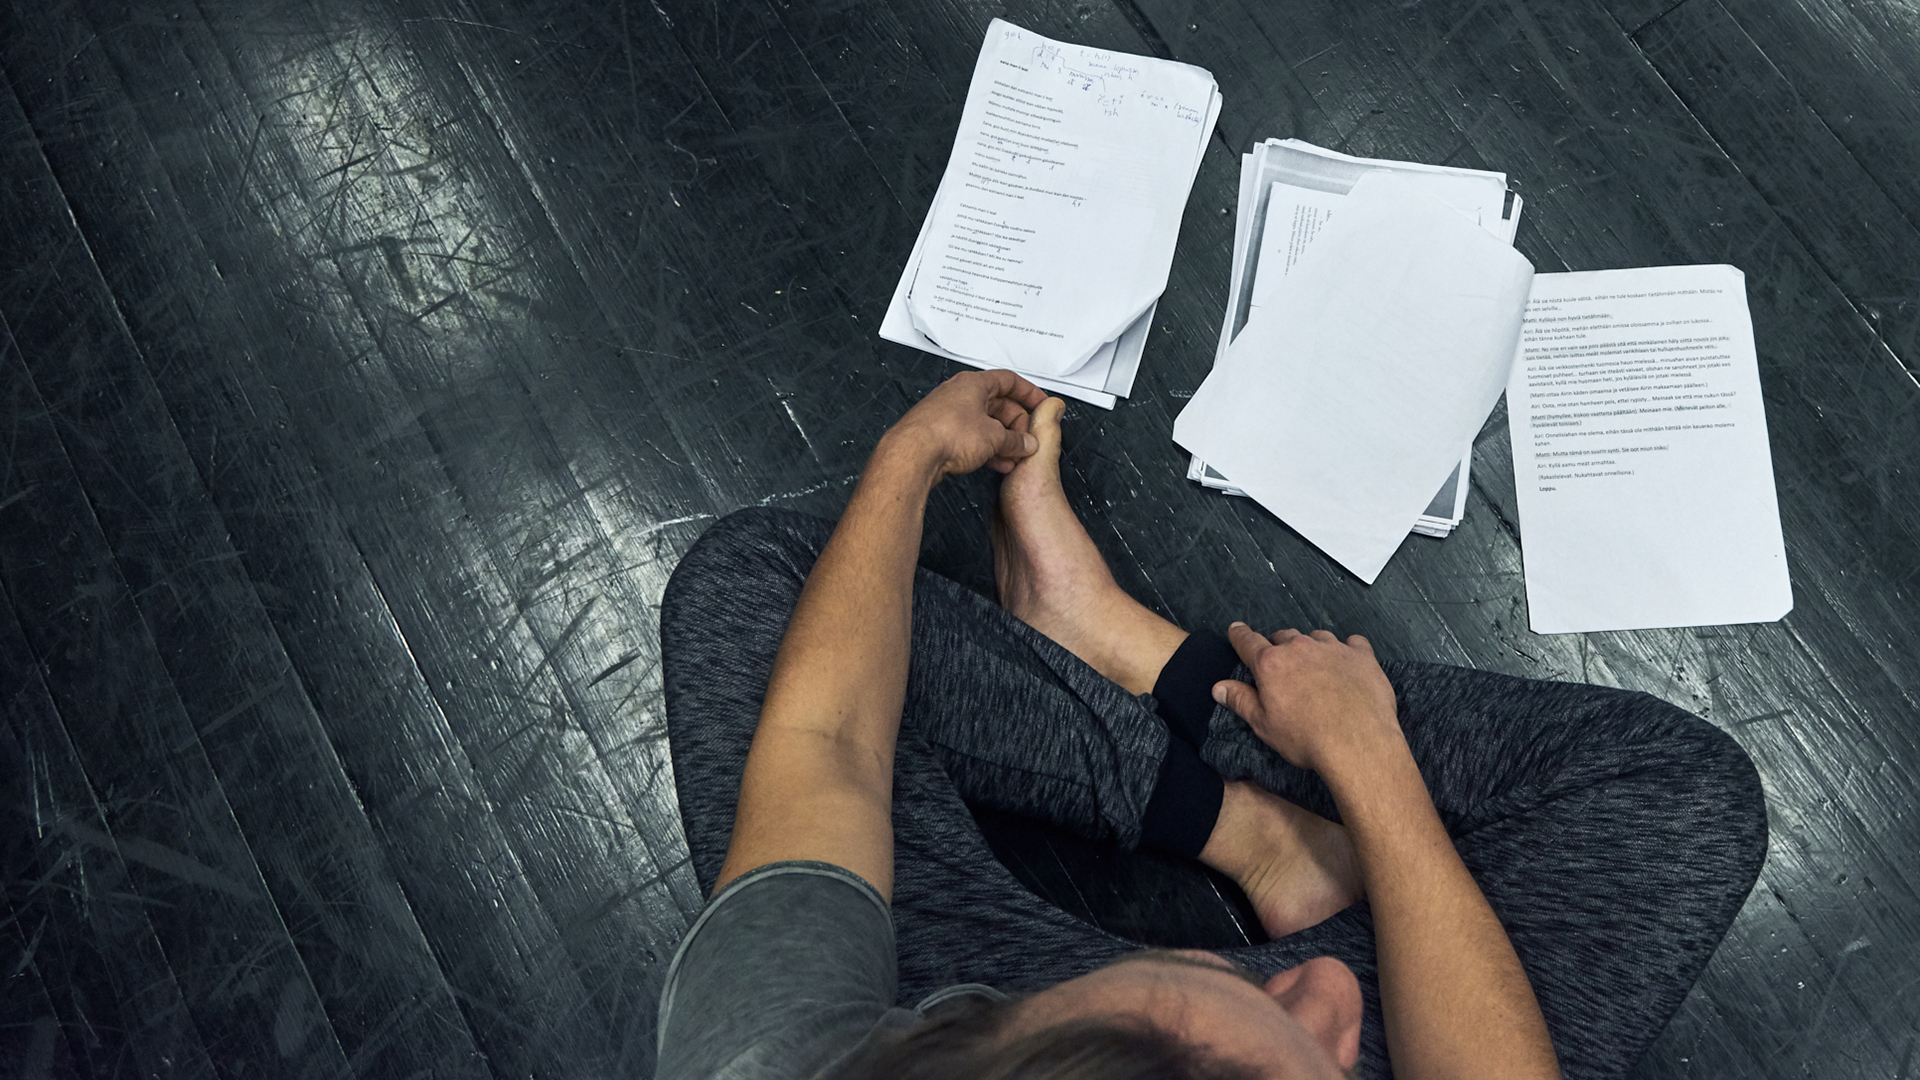 Person sitting cross-legged on black floor, papers with text placed on the floor.